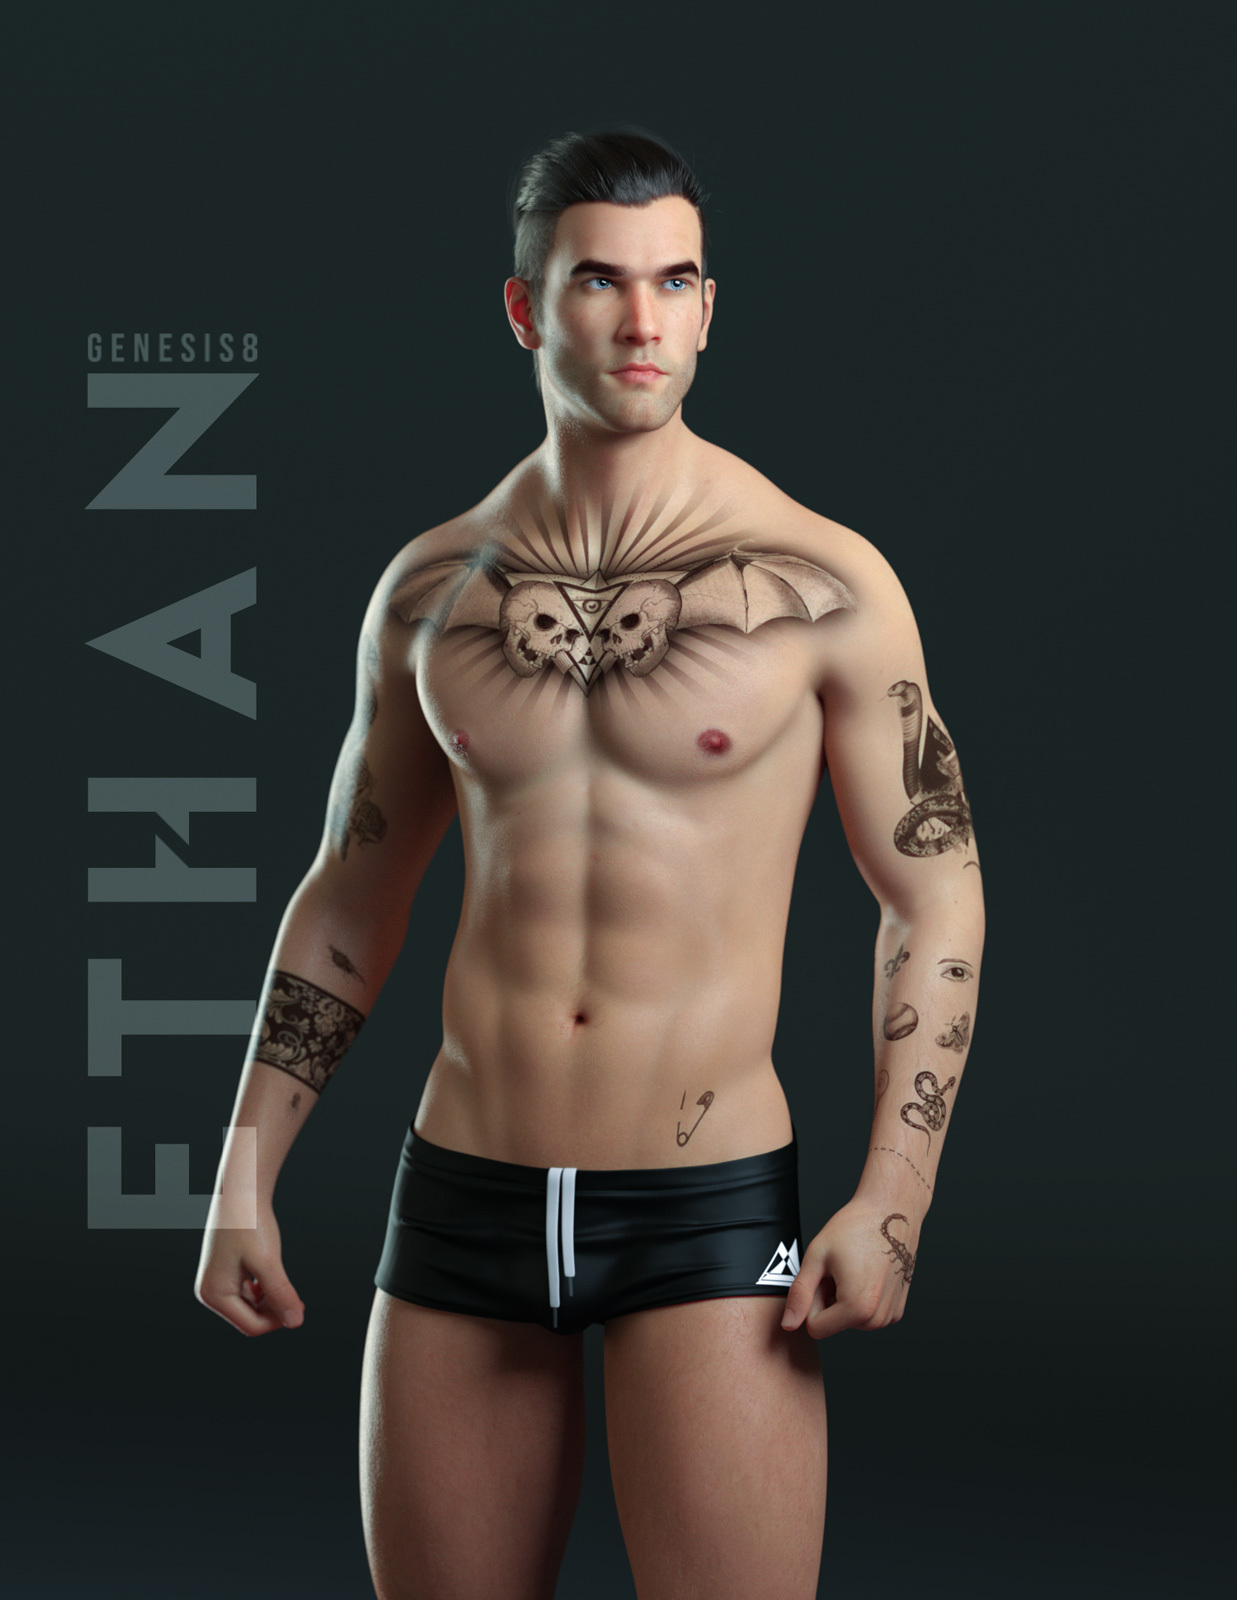 Ethan for Genesis 8 Male